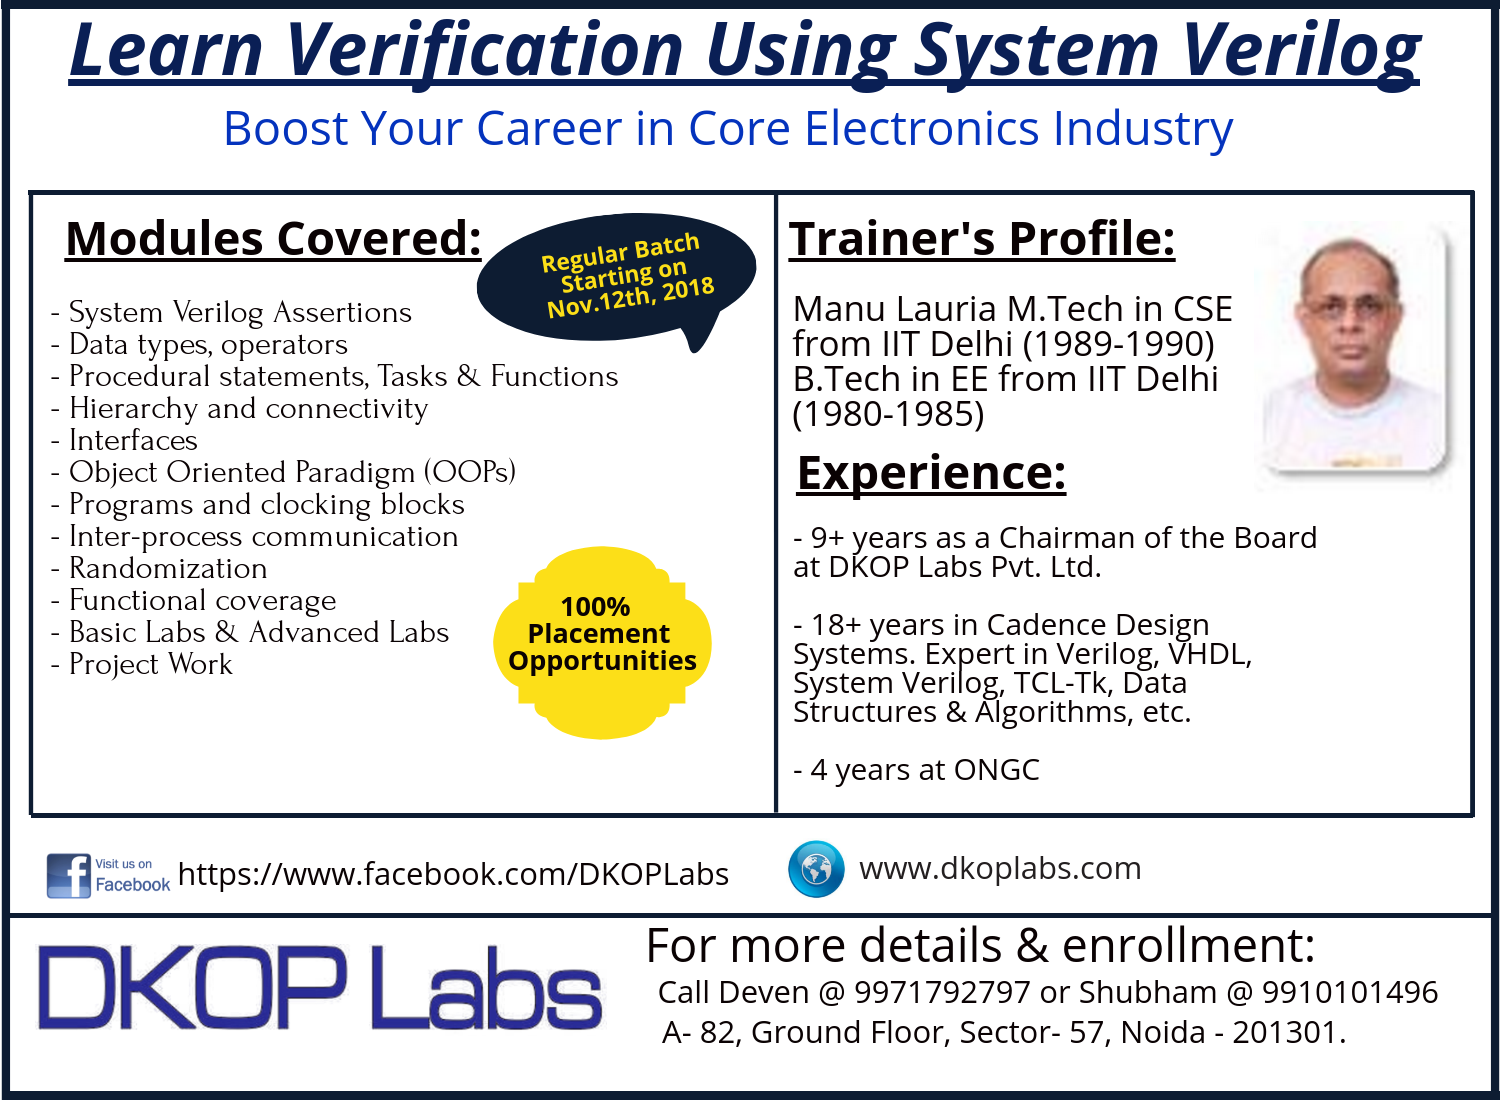 Learn Verification Using System Verilog - Boost Your Career